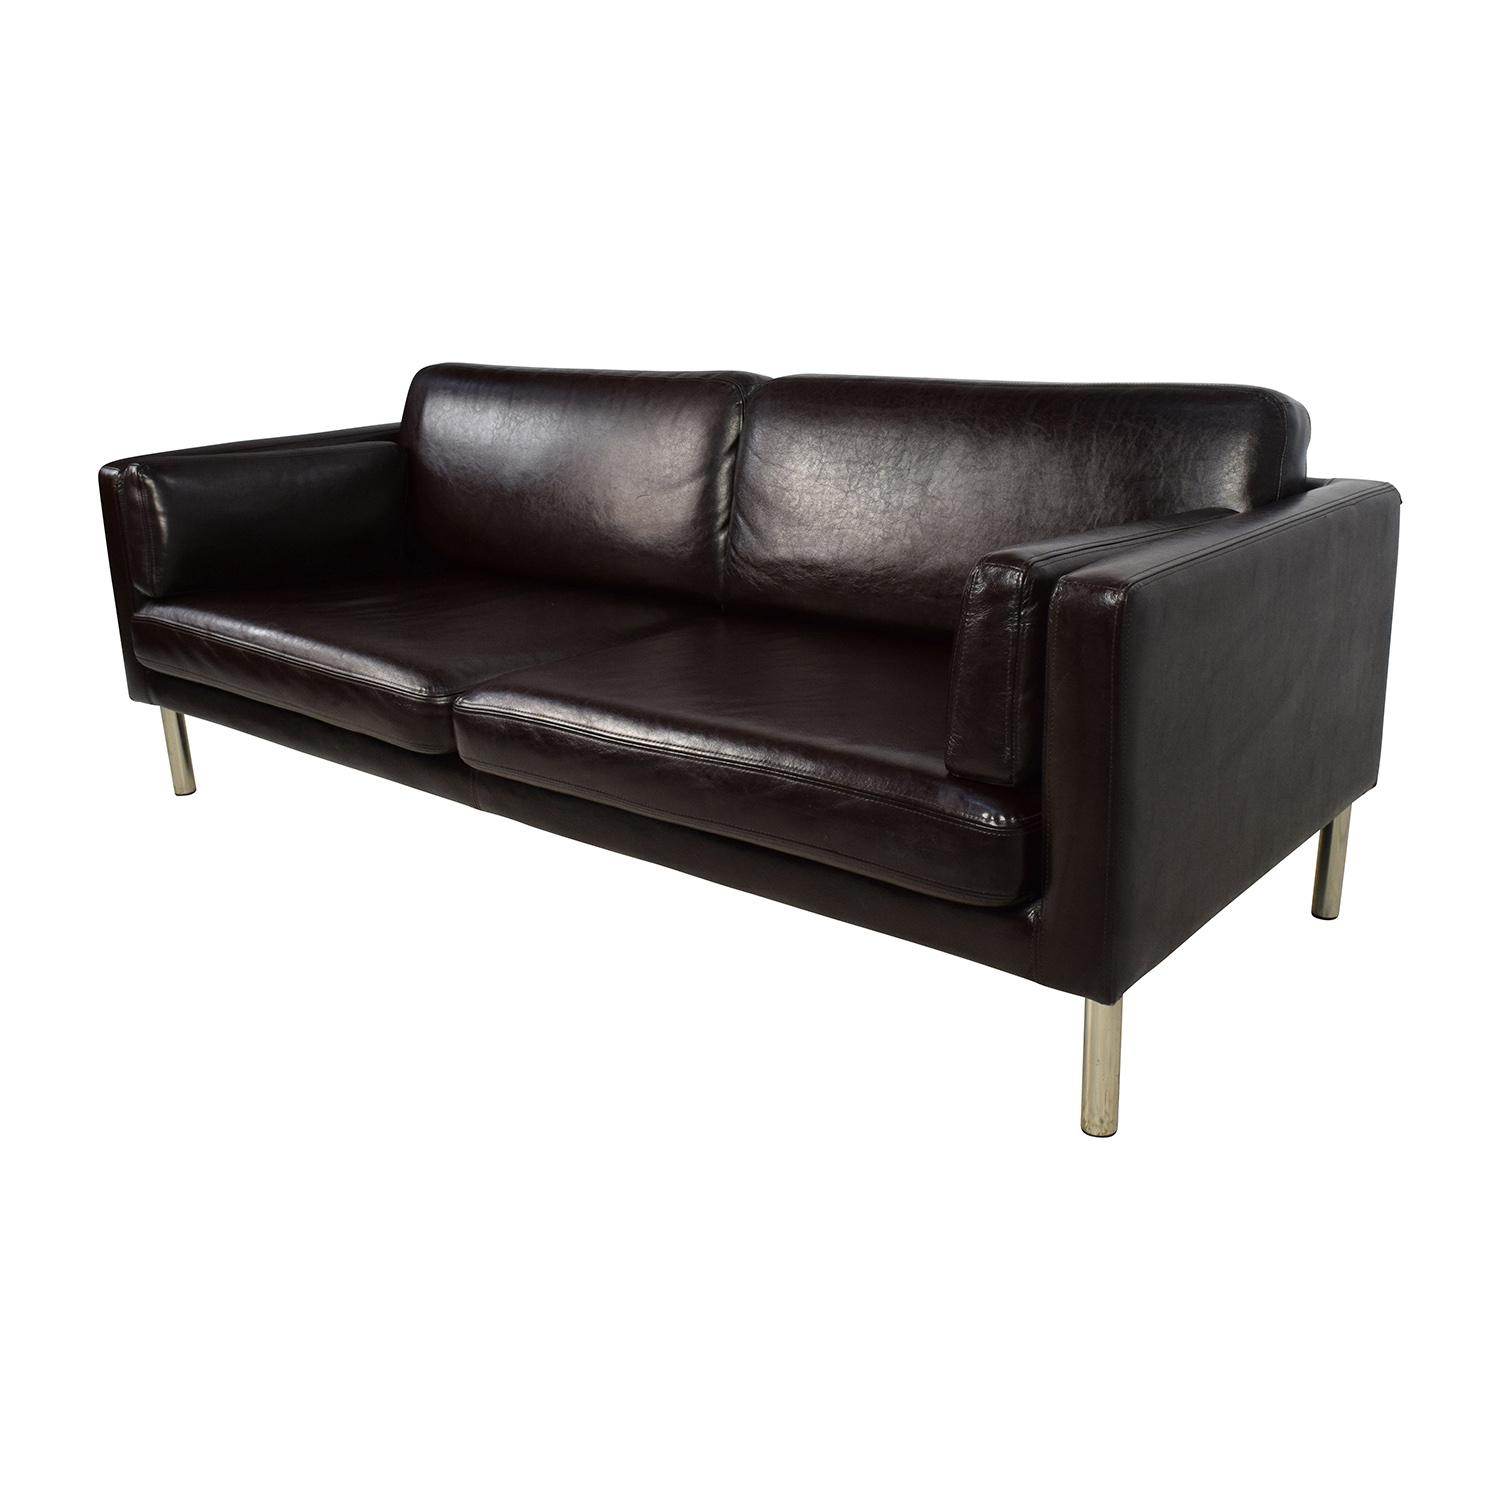 76% Off - Brown Leather Sofa With Chrome Legs / Sofas pertaining to Sofas With Chrome Legs